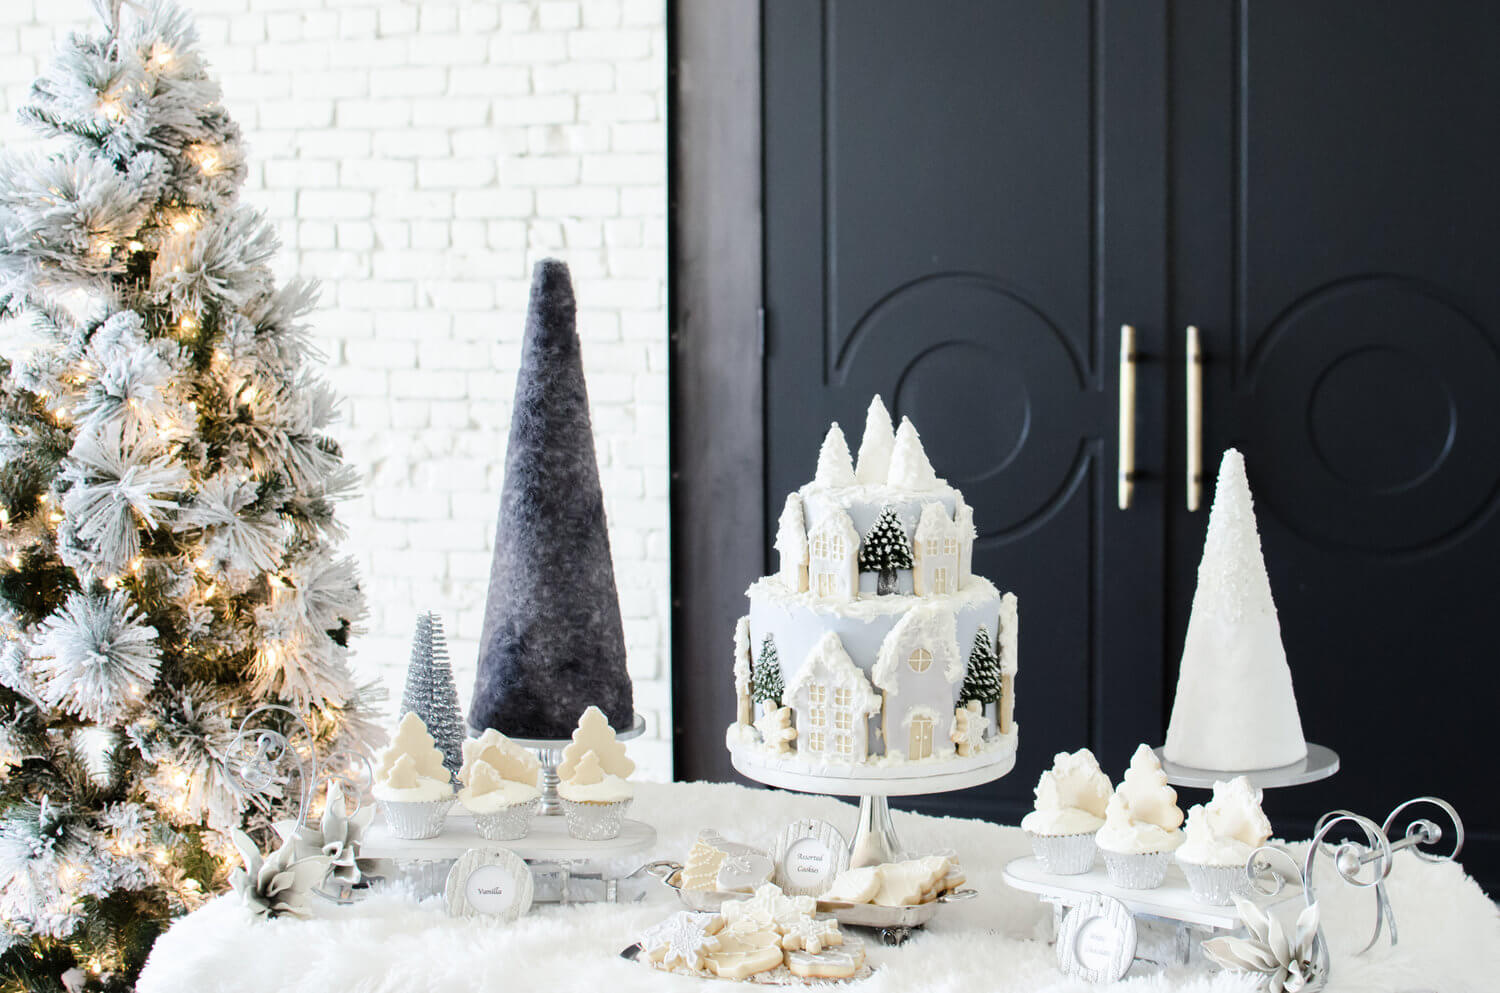 The prettiest of Winter Party Dessert Table Inspiration. Snow flocked tree, a cake decorated with cookies and edible cookies top the cupcakes. See more ideas from this Winter Wonderland themed Bridal Shower Inspiration created by Mint Event Design www.minteventdesign.com #winterweddingideas #weddingwedding #bridalshowerideas #winterwonderland #desserttable